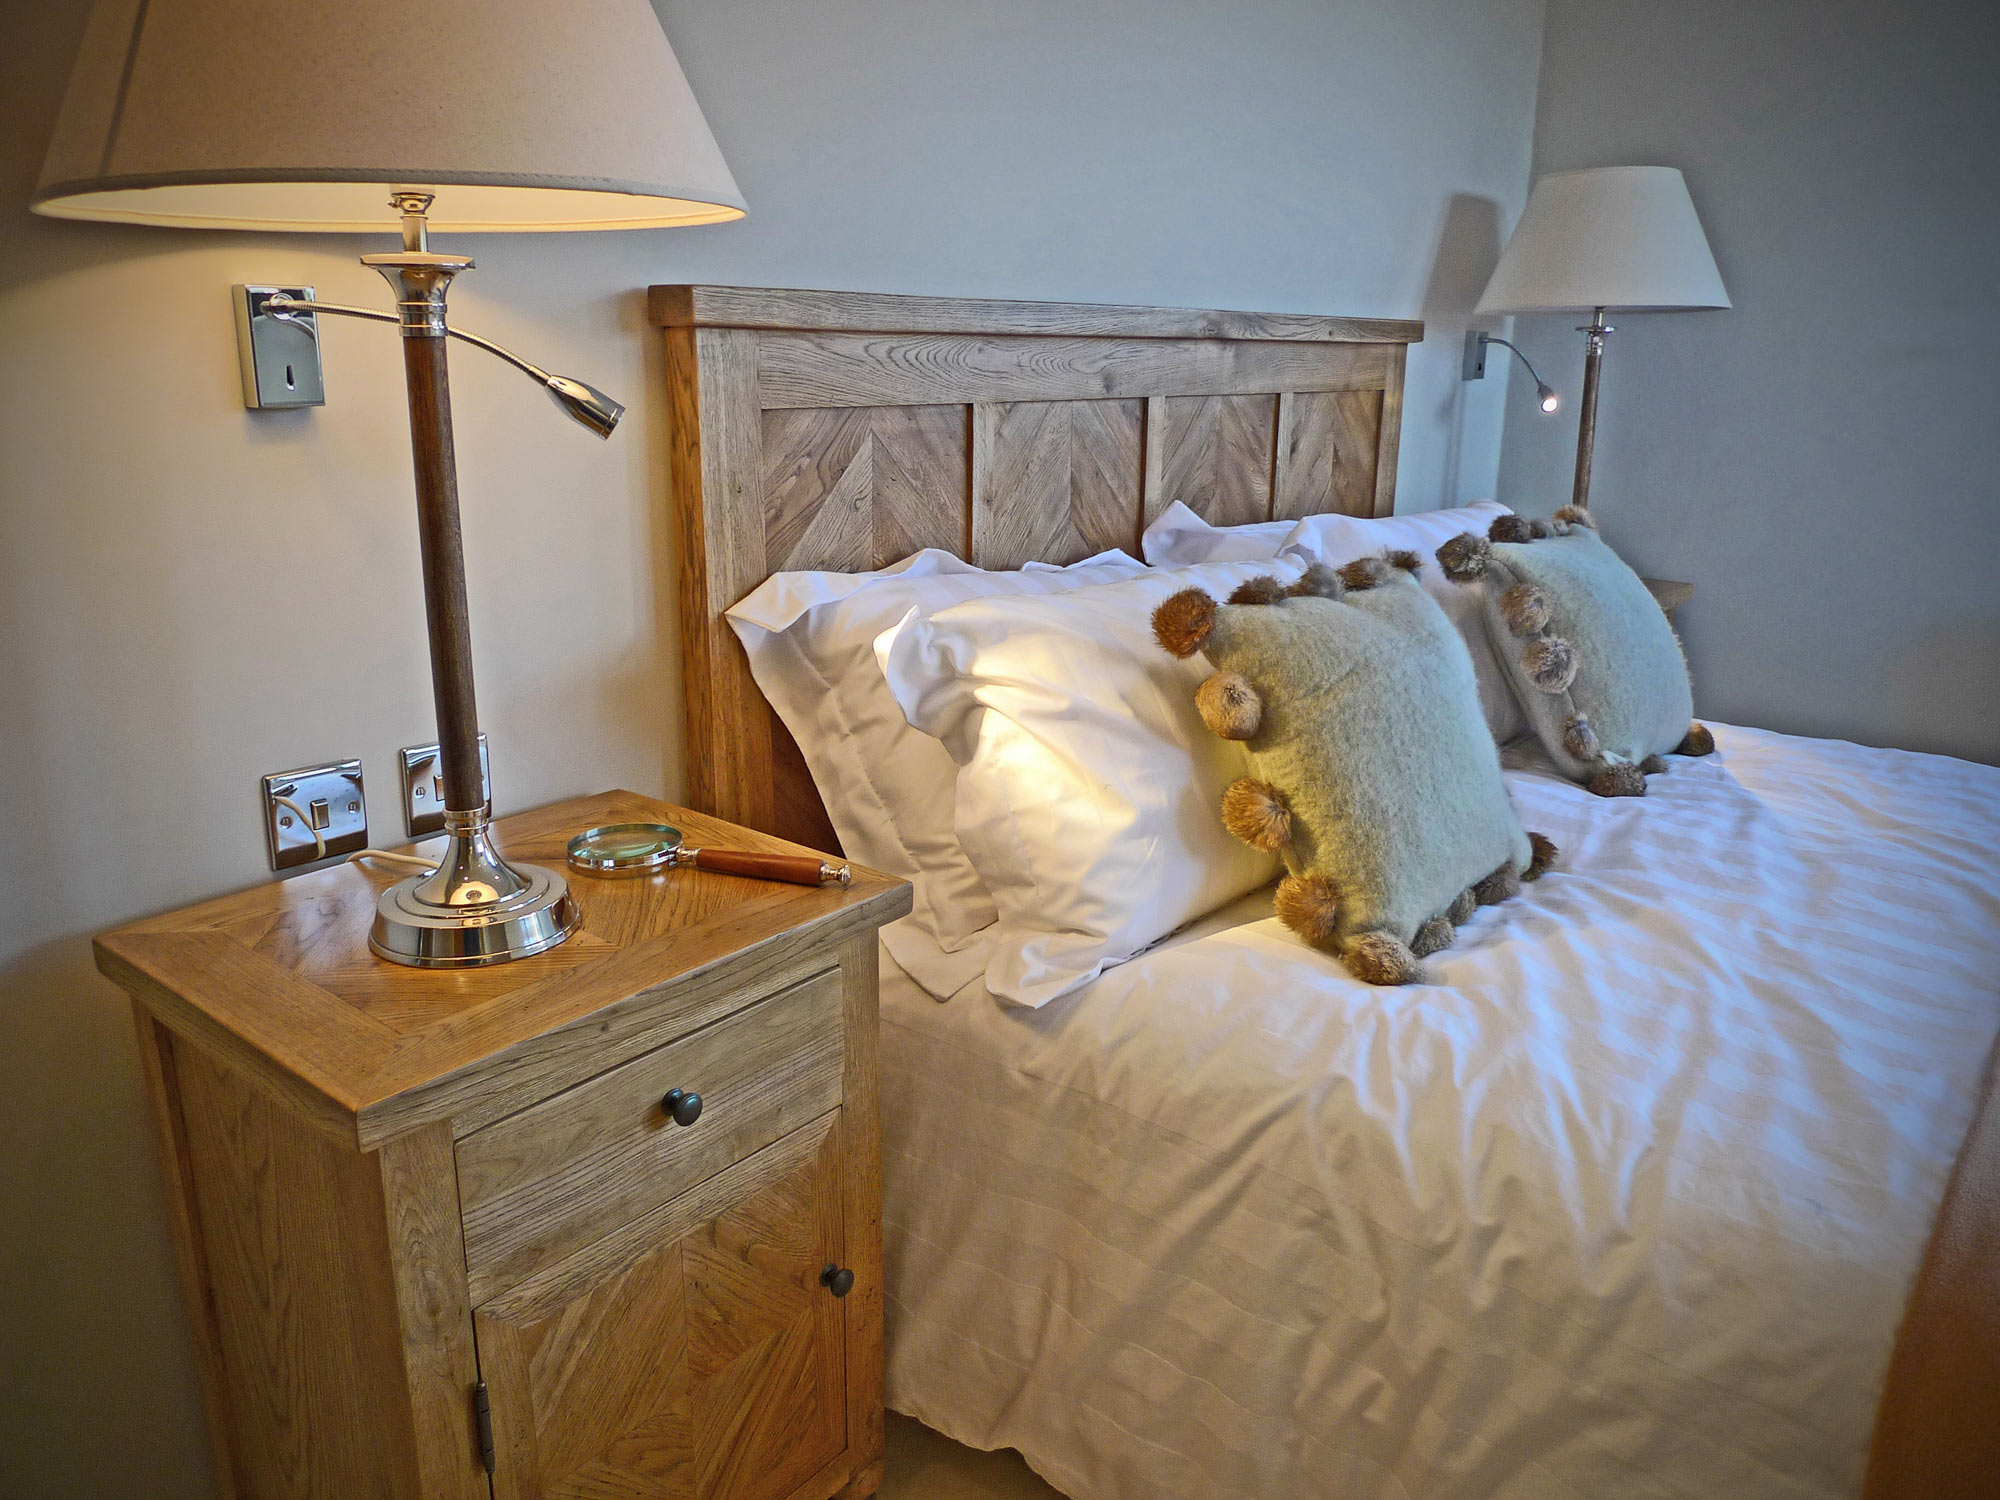 Woodland Lodge Retreat, Group Accommodation Holiday Home, 10-14 guests